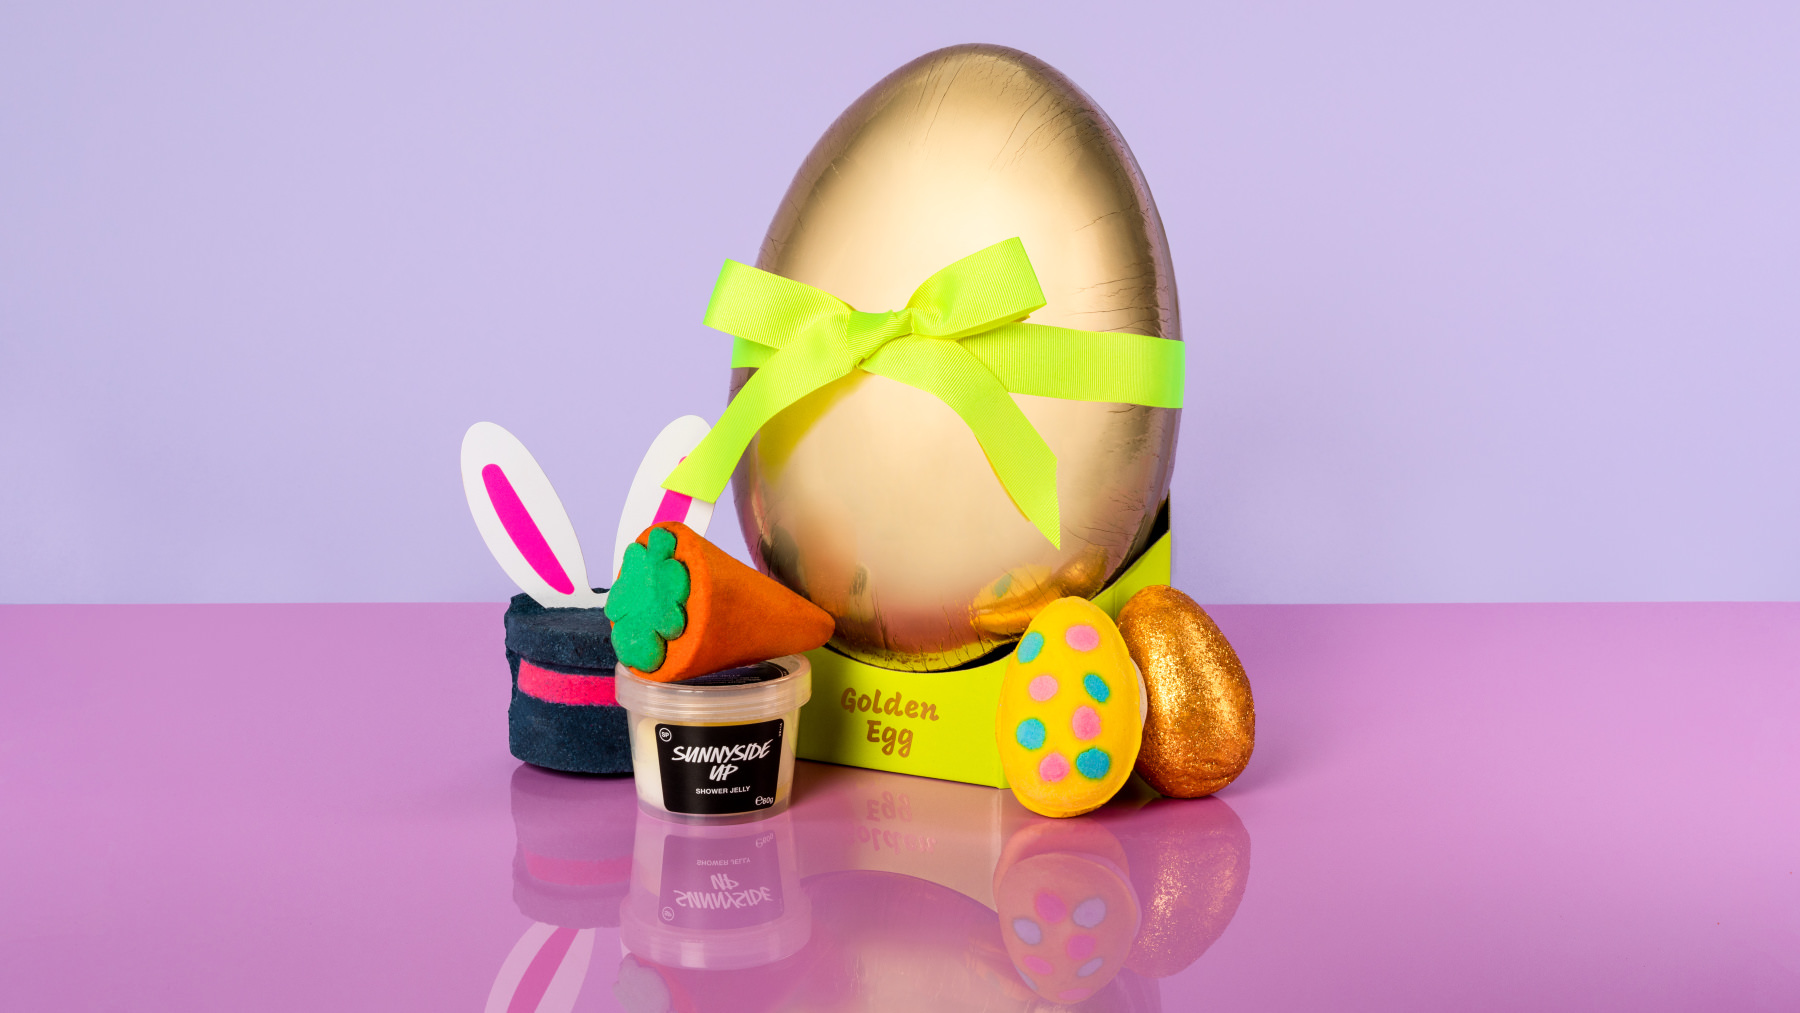 golden egg shaped box surrounded by products that come inside the gift. The background is a light purple